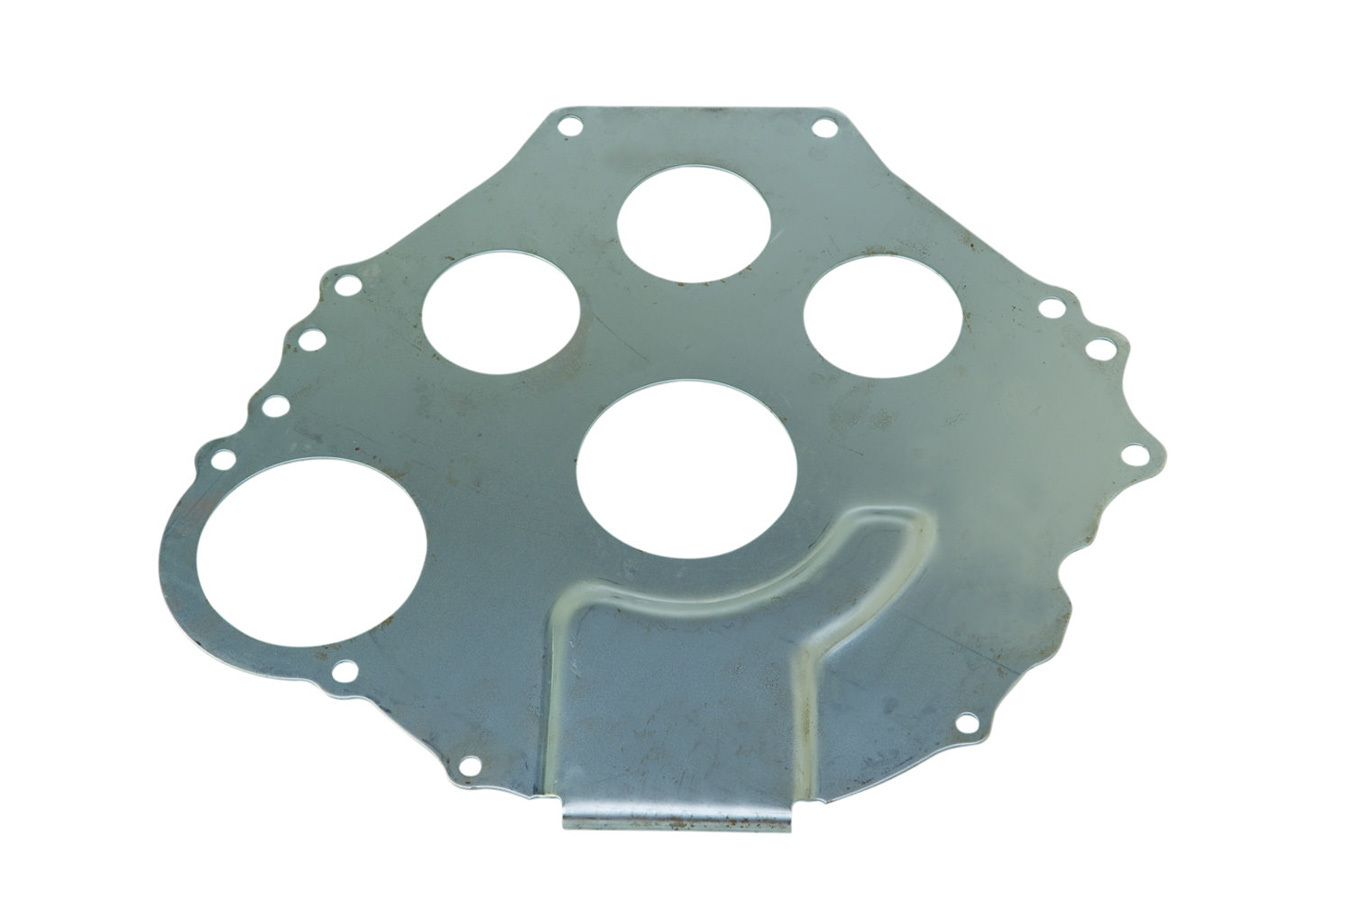 Ford M7007-B Bellhousing Plate, Separator, 0.080 in Thick, Steel, Natural, Manual Transmission, Small Block Ford, Each